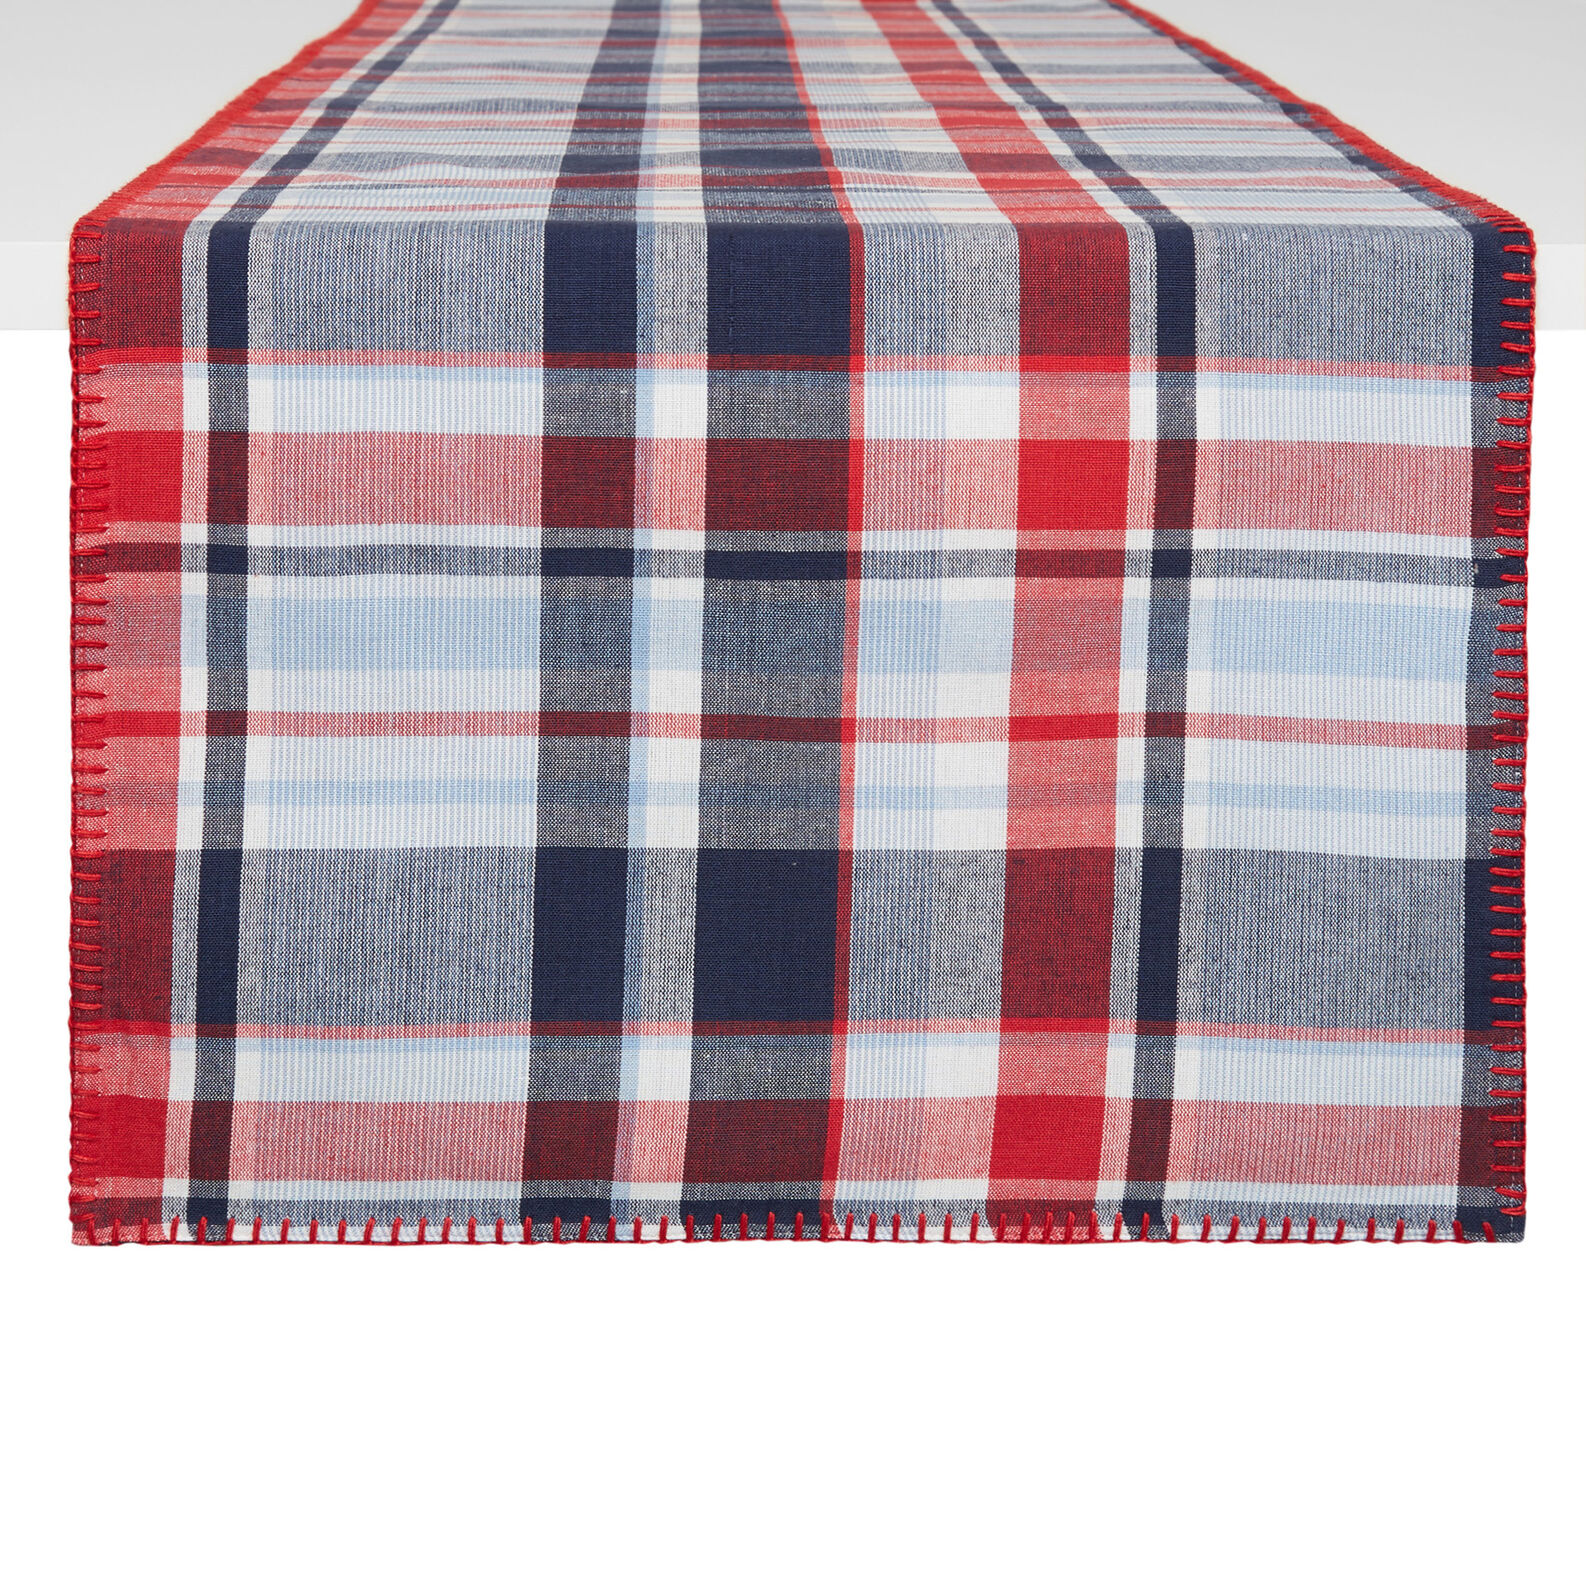 Yarn-dyed table runner in 100% cotton with check motif